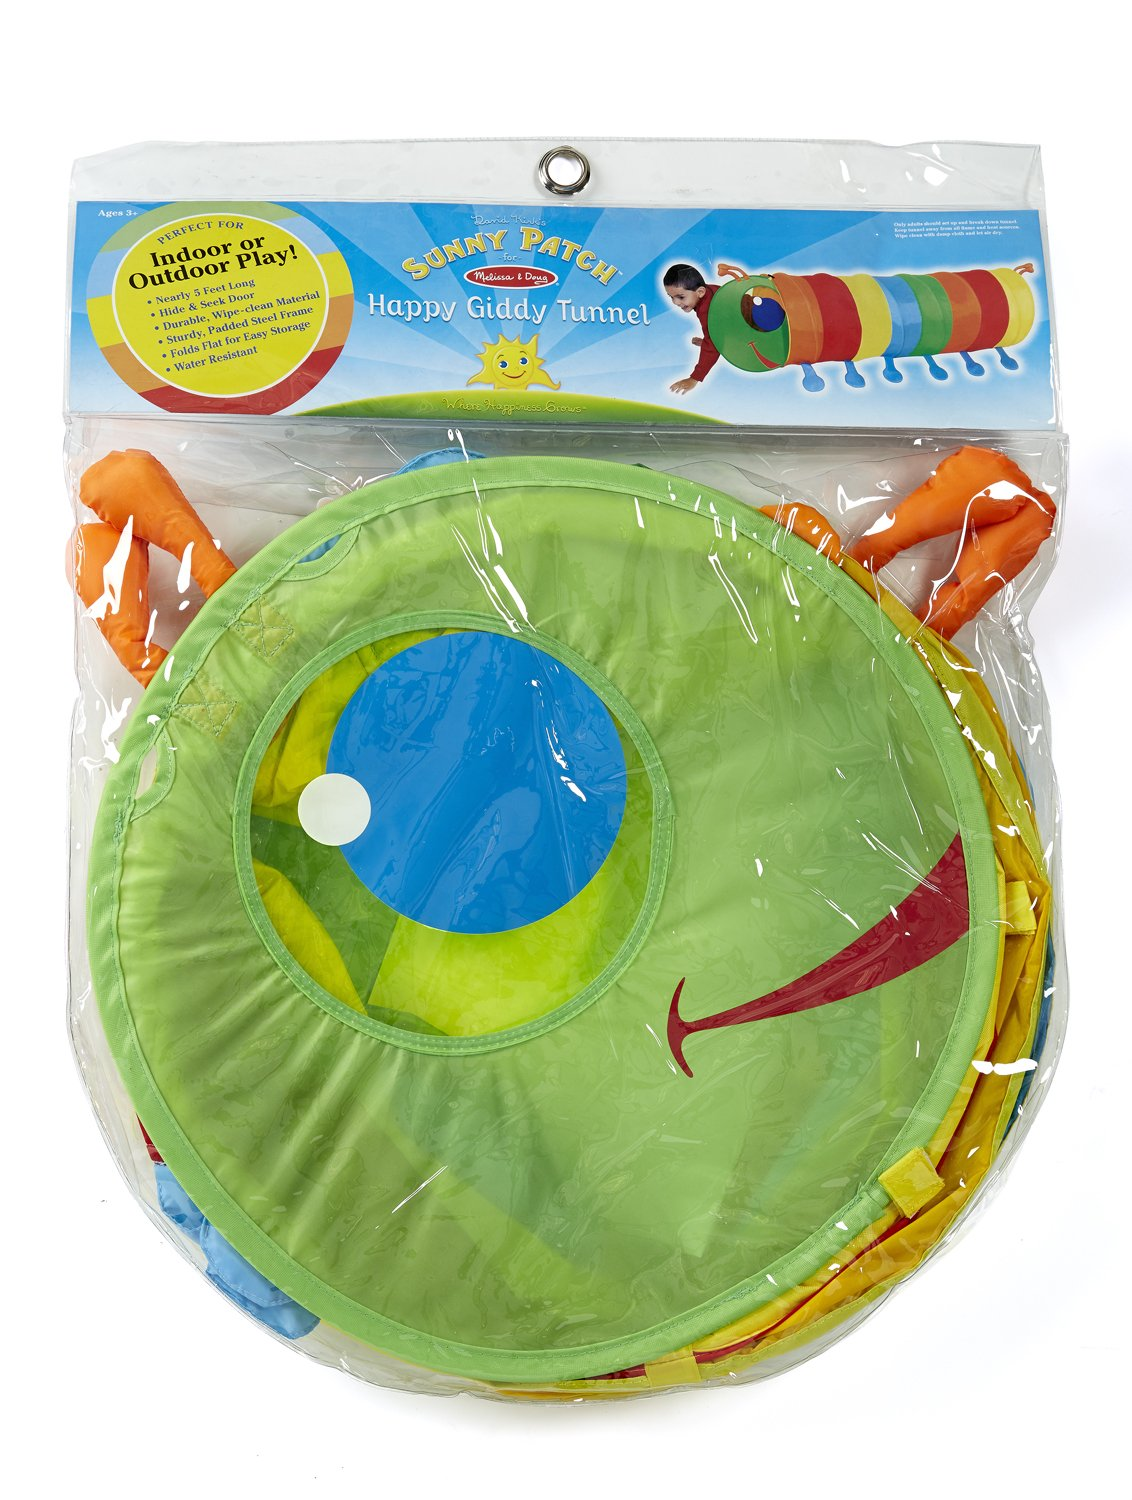 Melissa & Doug Sunny Patch Happy Giddy Crawl-Through Tunnel